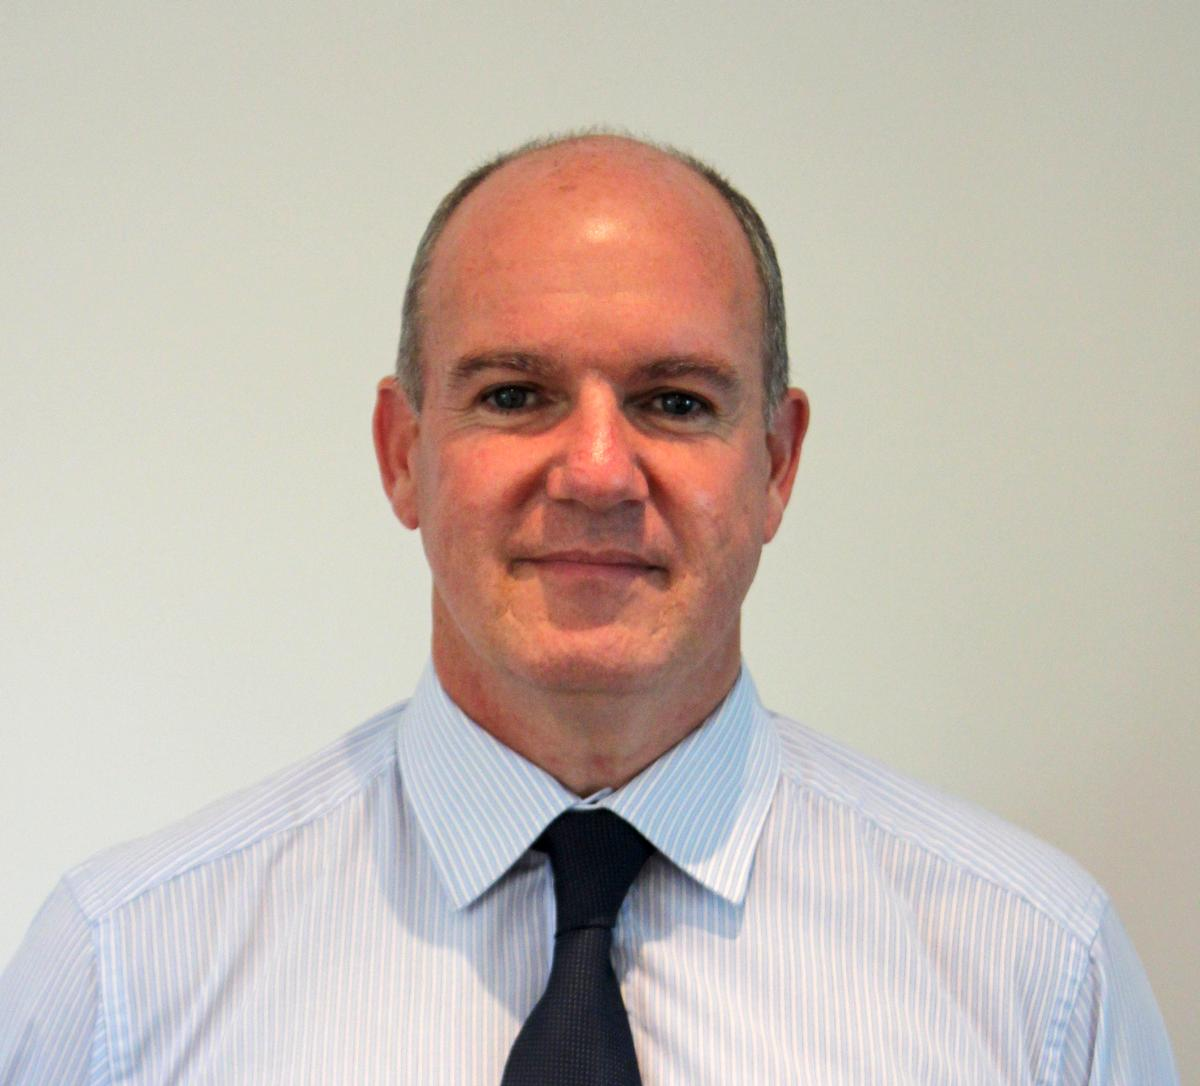 Ian Morey, business development director for Freedom Leisure, says the trust is diversifying to foster growth